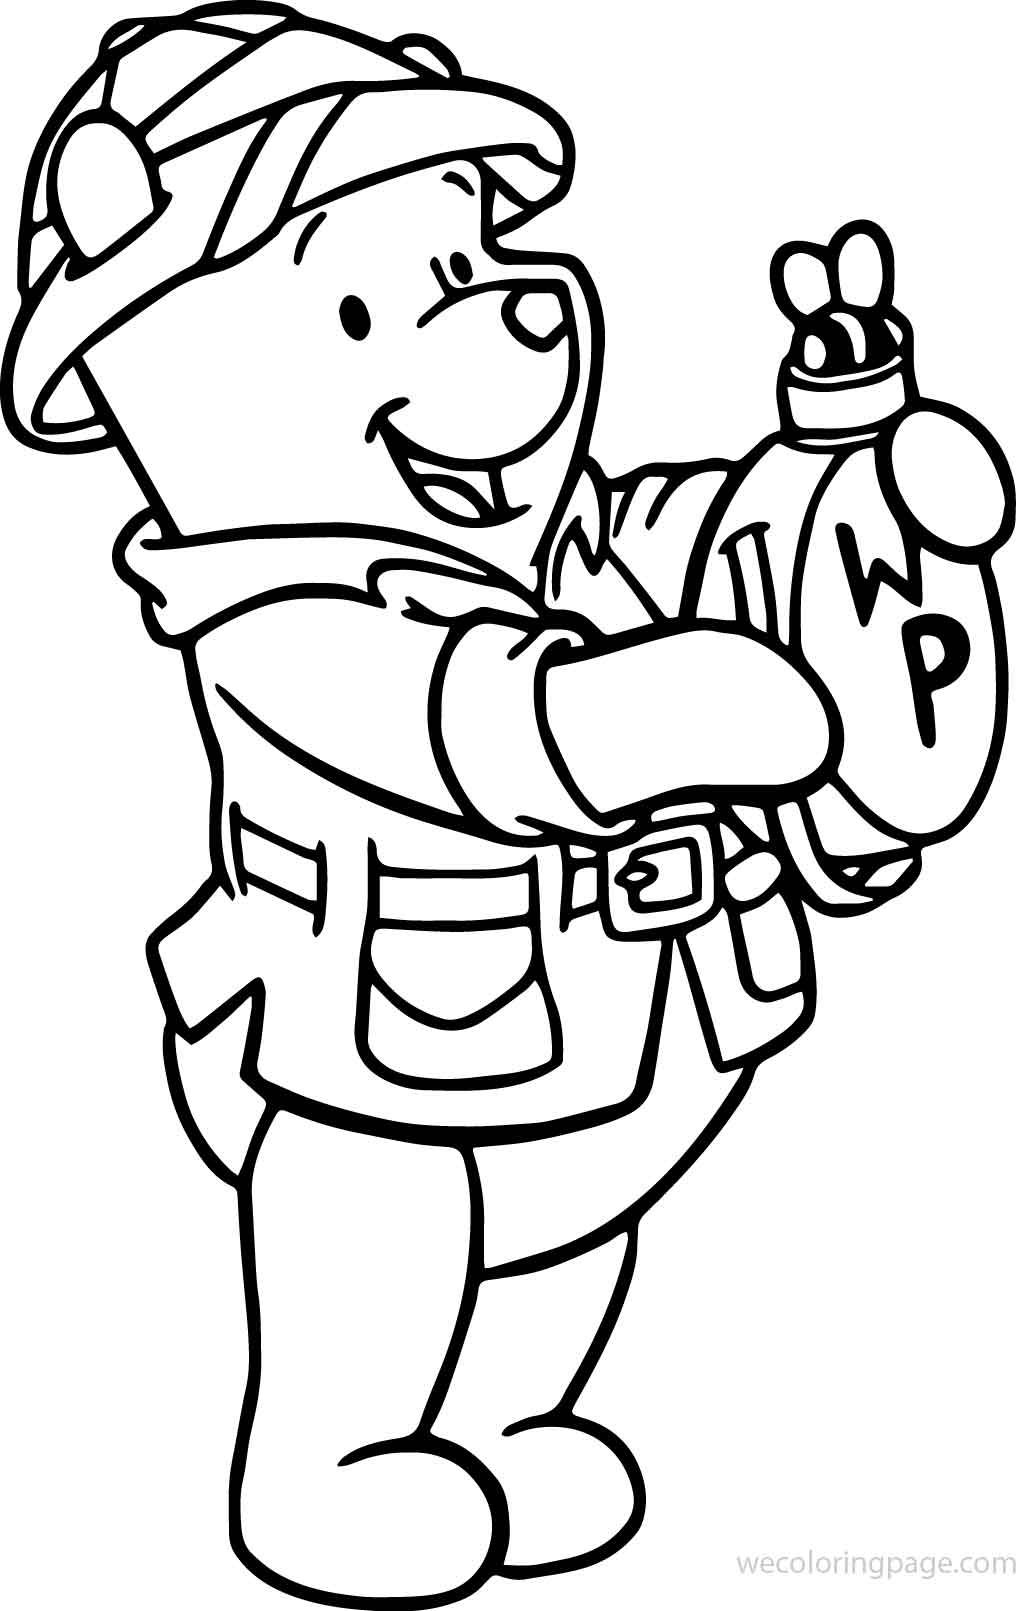 Winnie The Pooh Animal Kingdom Coloring Page